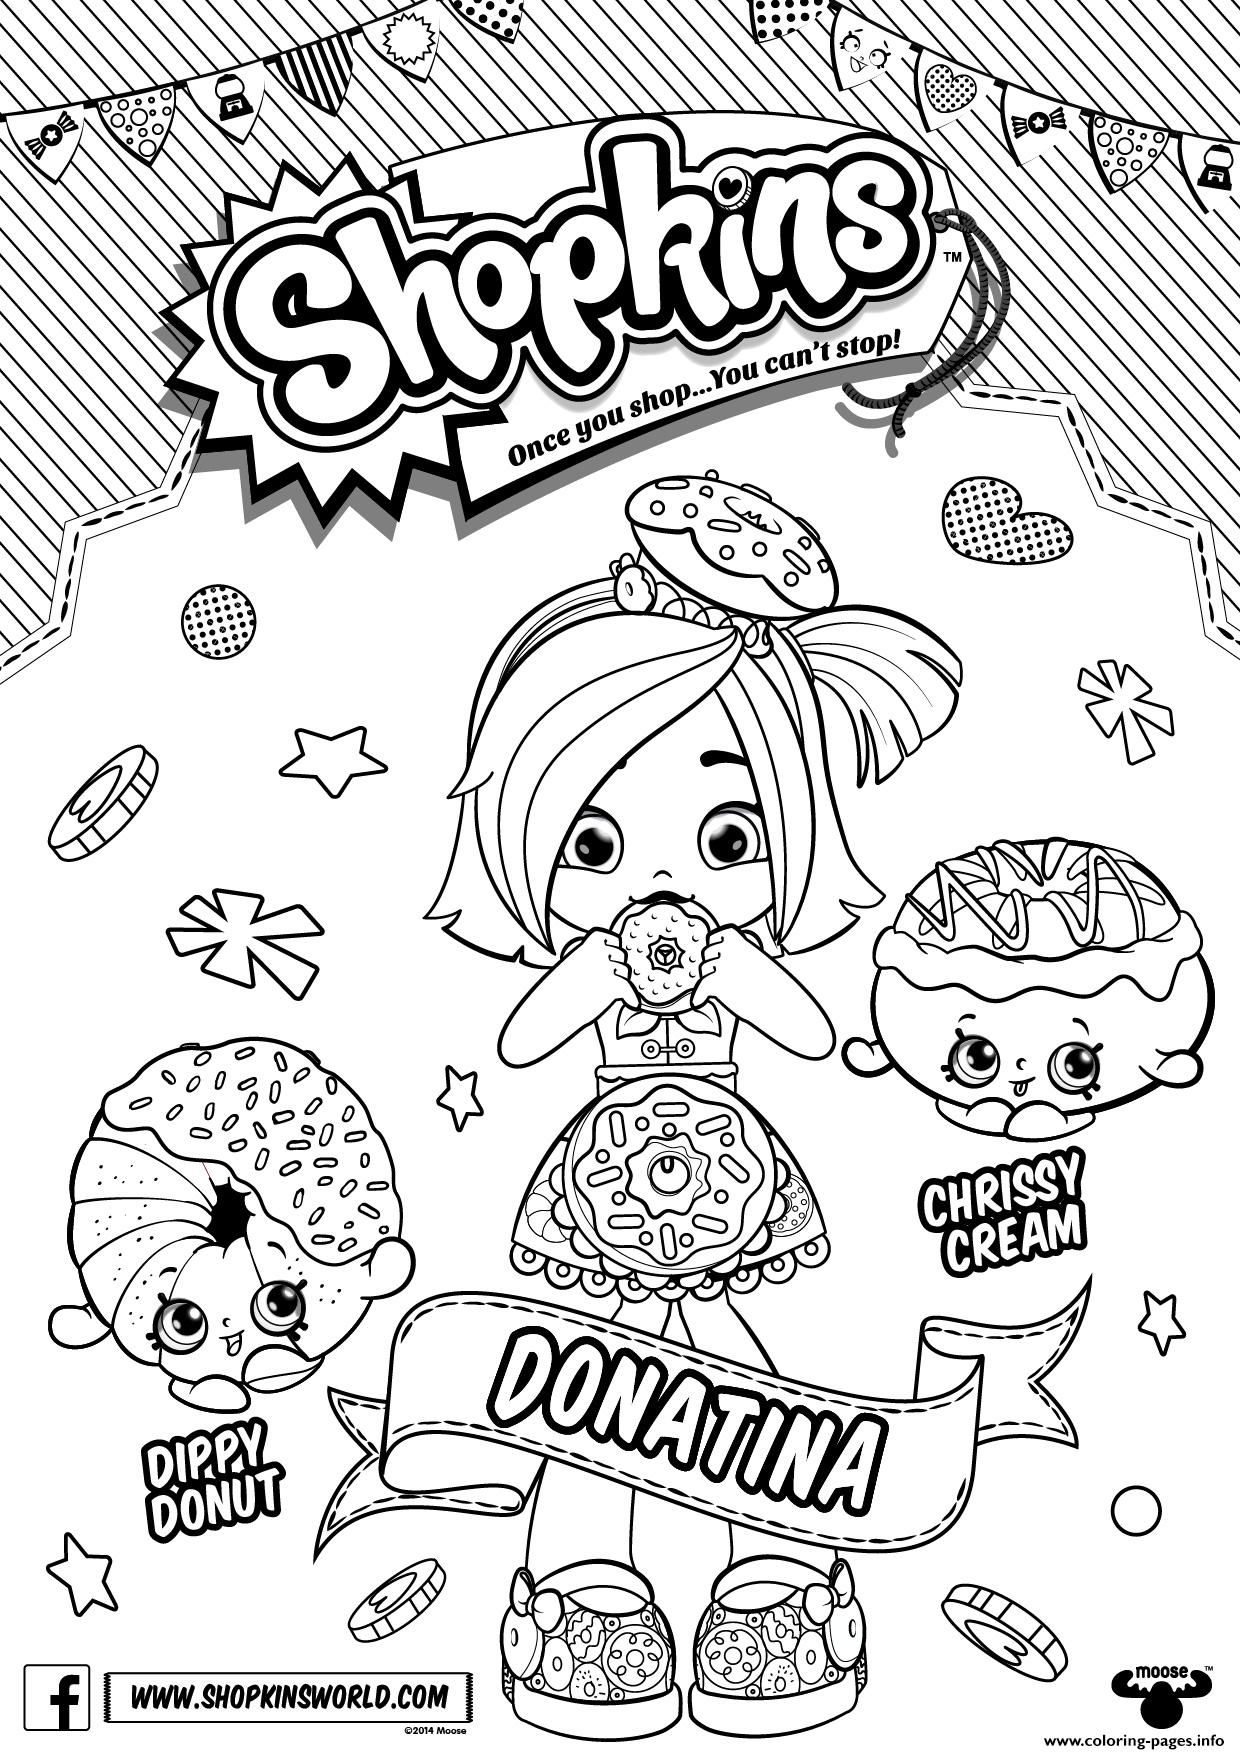 Donatina Shoppies Shopkins Coloring Pages Shopkins Colouring Pages Shopkin Coloring Pages Cute Coloring Pages